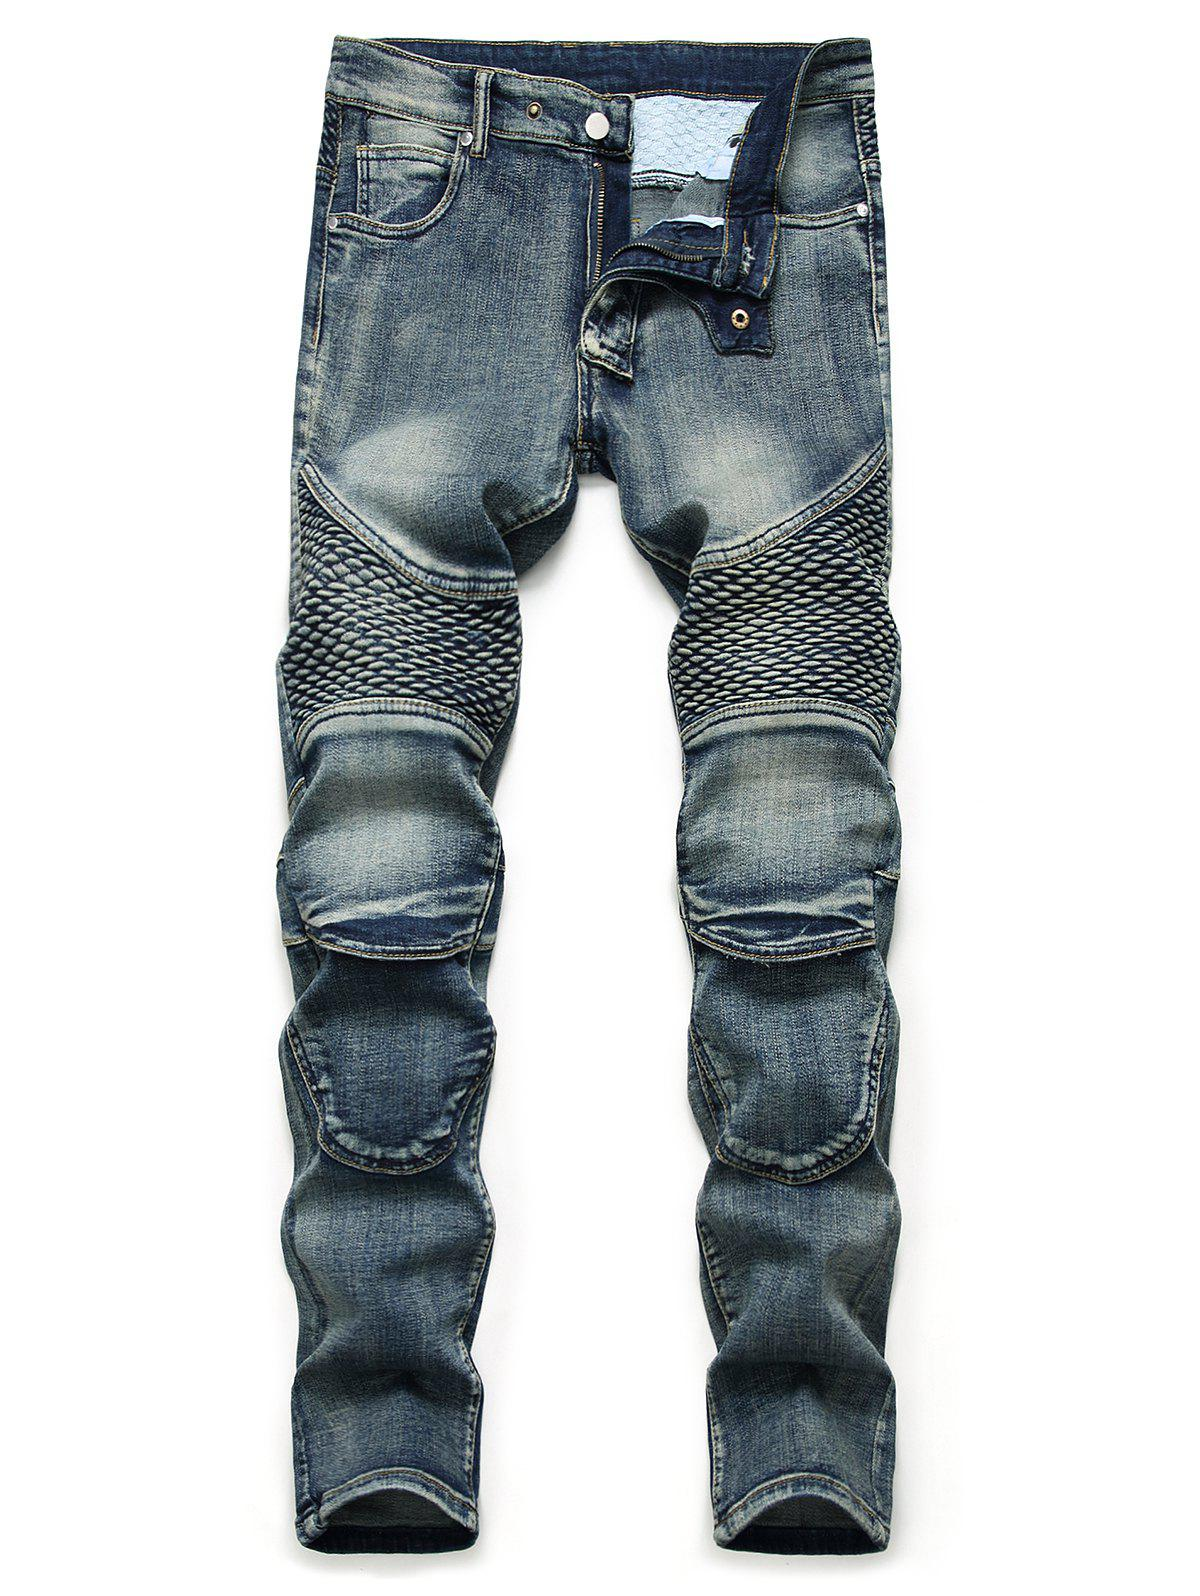 Light Wash Multi Pockets Tapered Jeans - DENIM DARK BLUE 38